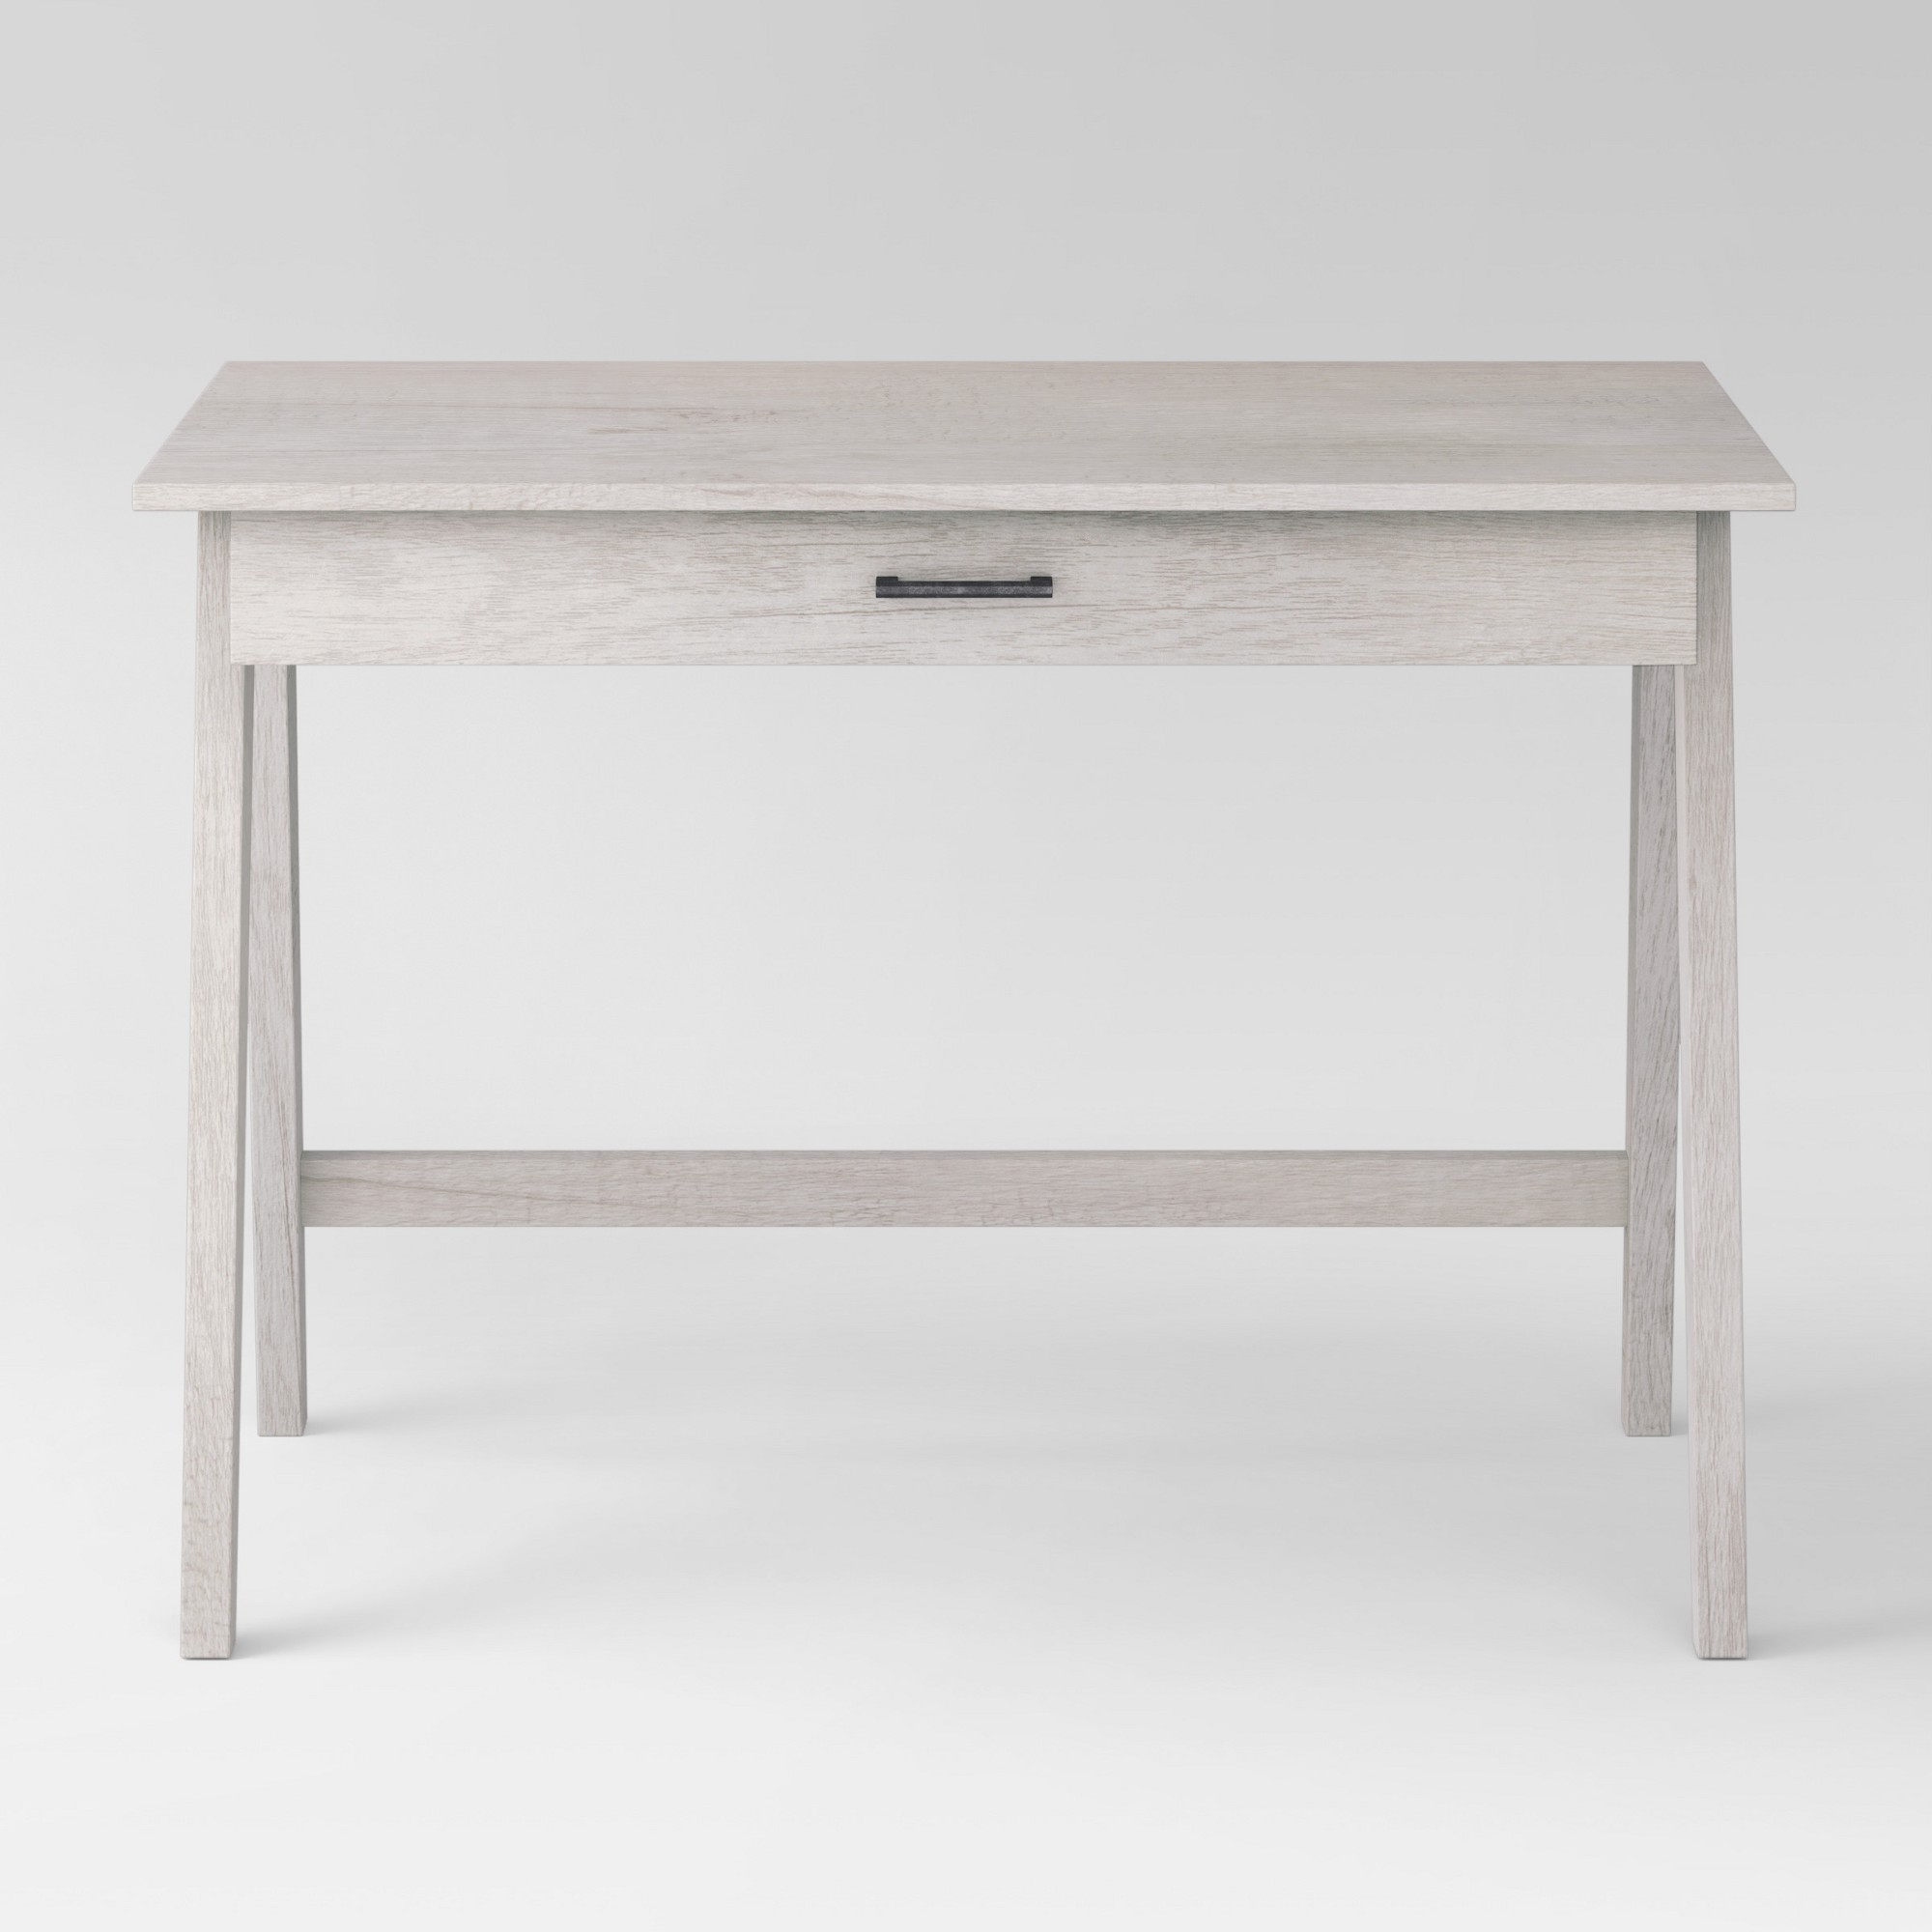 Paulo Basic Desk White Wash Project 62 in 2020 White